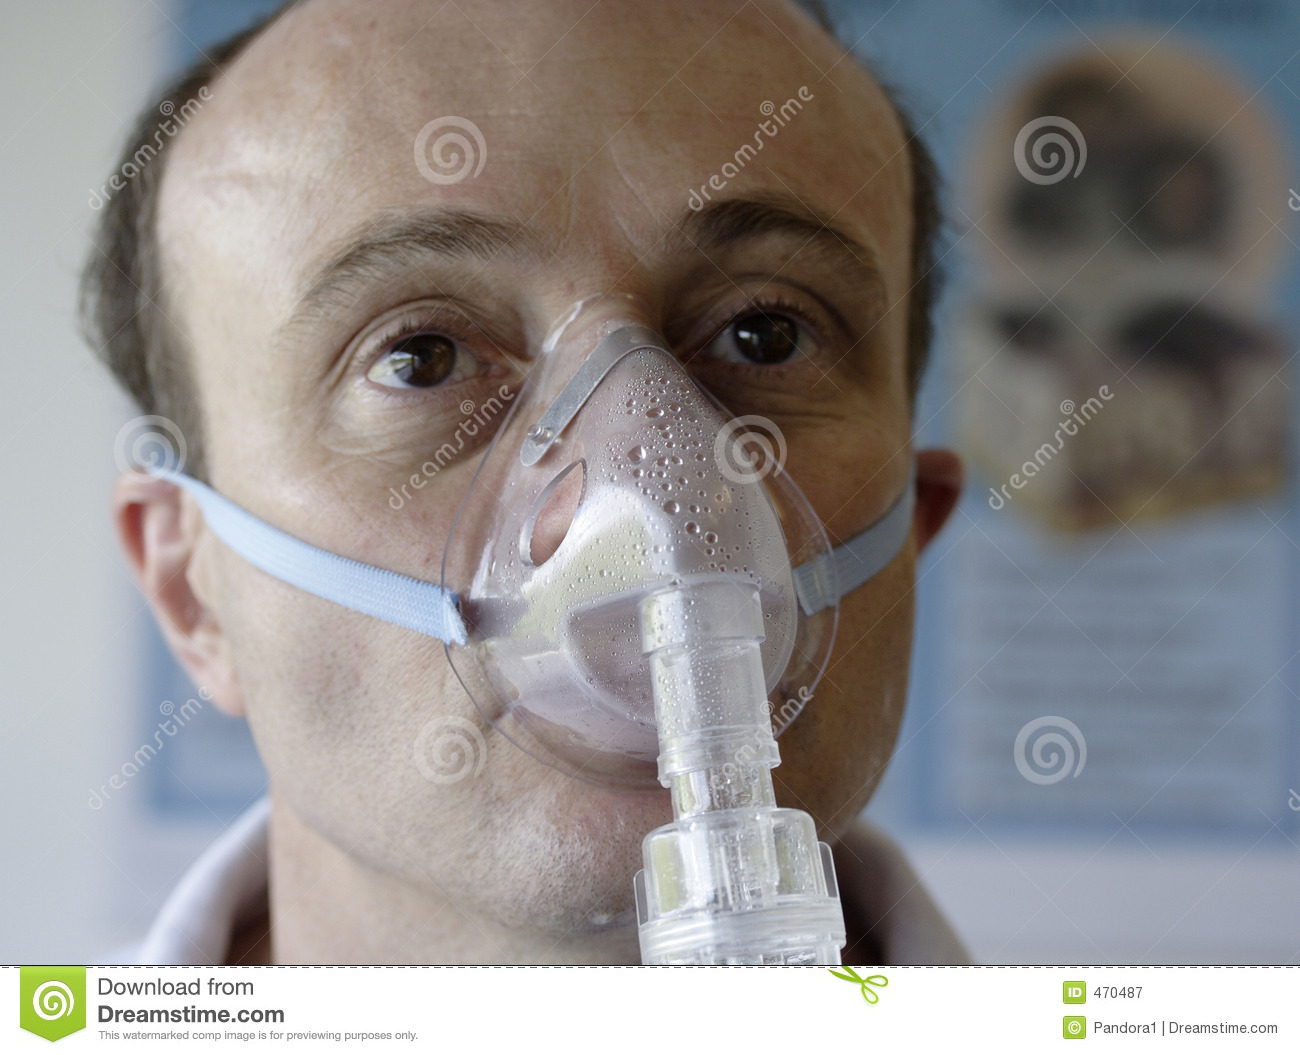 Patient in an oxygen mask